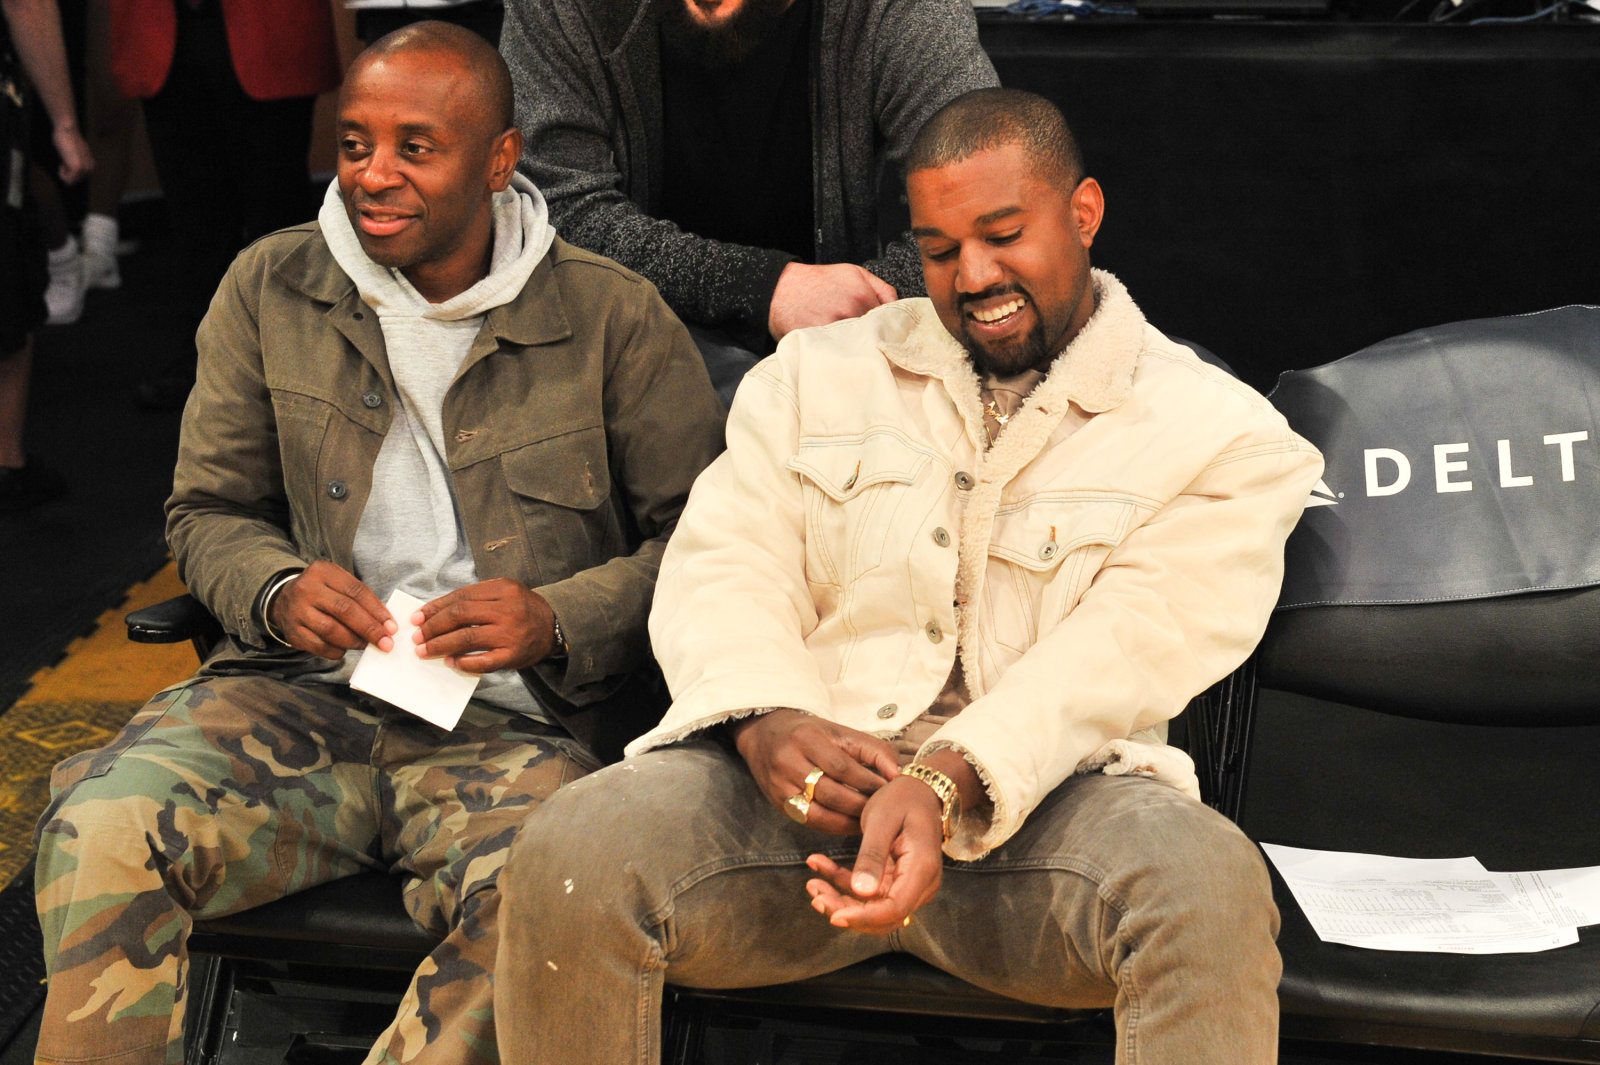 LOS ANGELES, CA - NOVEMBER 05:  Rapper Kanye West (R) attends a basketball game between the Los Angeles Lakers and the Memphis Grizzlies at Staples Center on November 5, 2017 in Los Angeles, California.  (Photo by Allen Berezovsky/Getty Images)